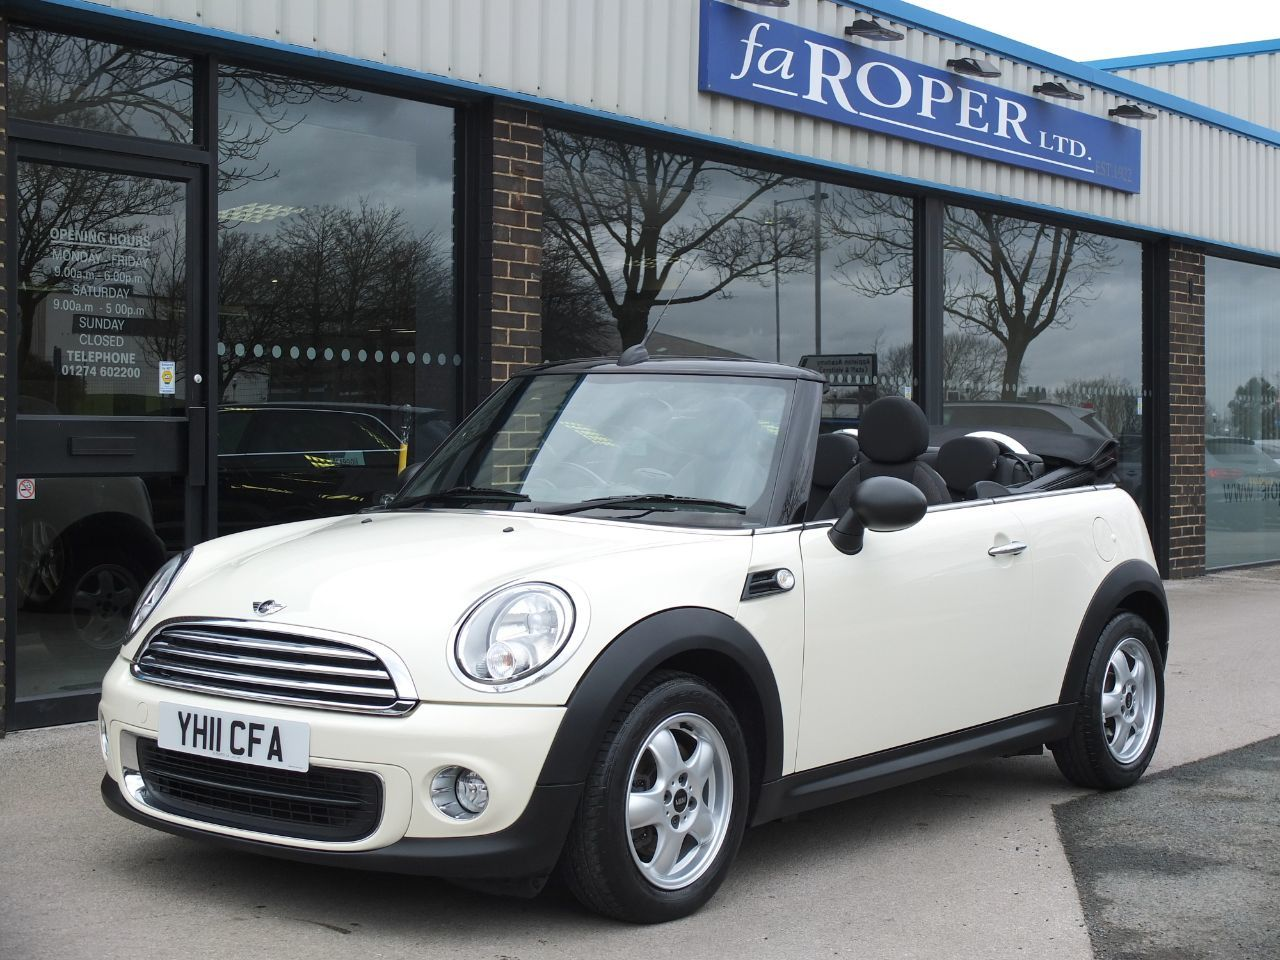 Mini Convertible 1.6 One Convertible Pepper Pack Convertible Petrol Pepper WhiteMini Convertible 1.6 One Convertible Pepper Pack Convertible Petrol Pepper White at fa Roper Ltd Bradford